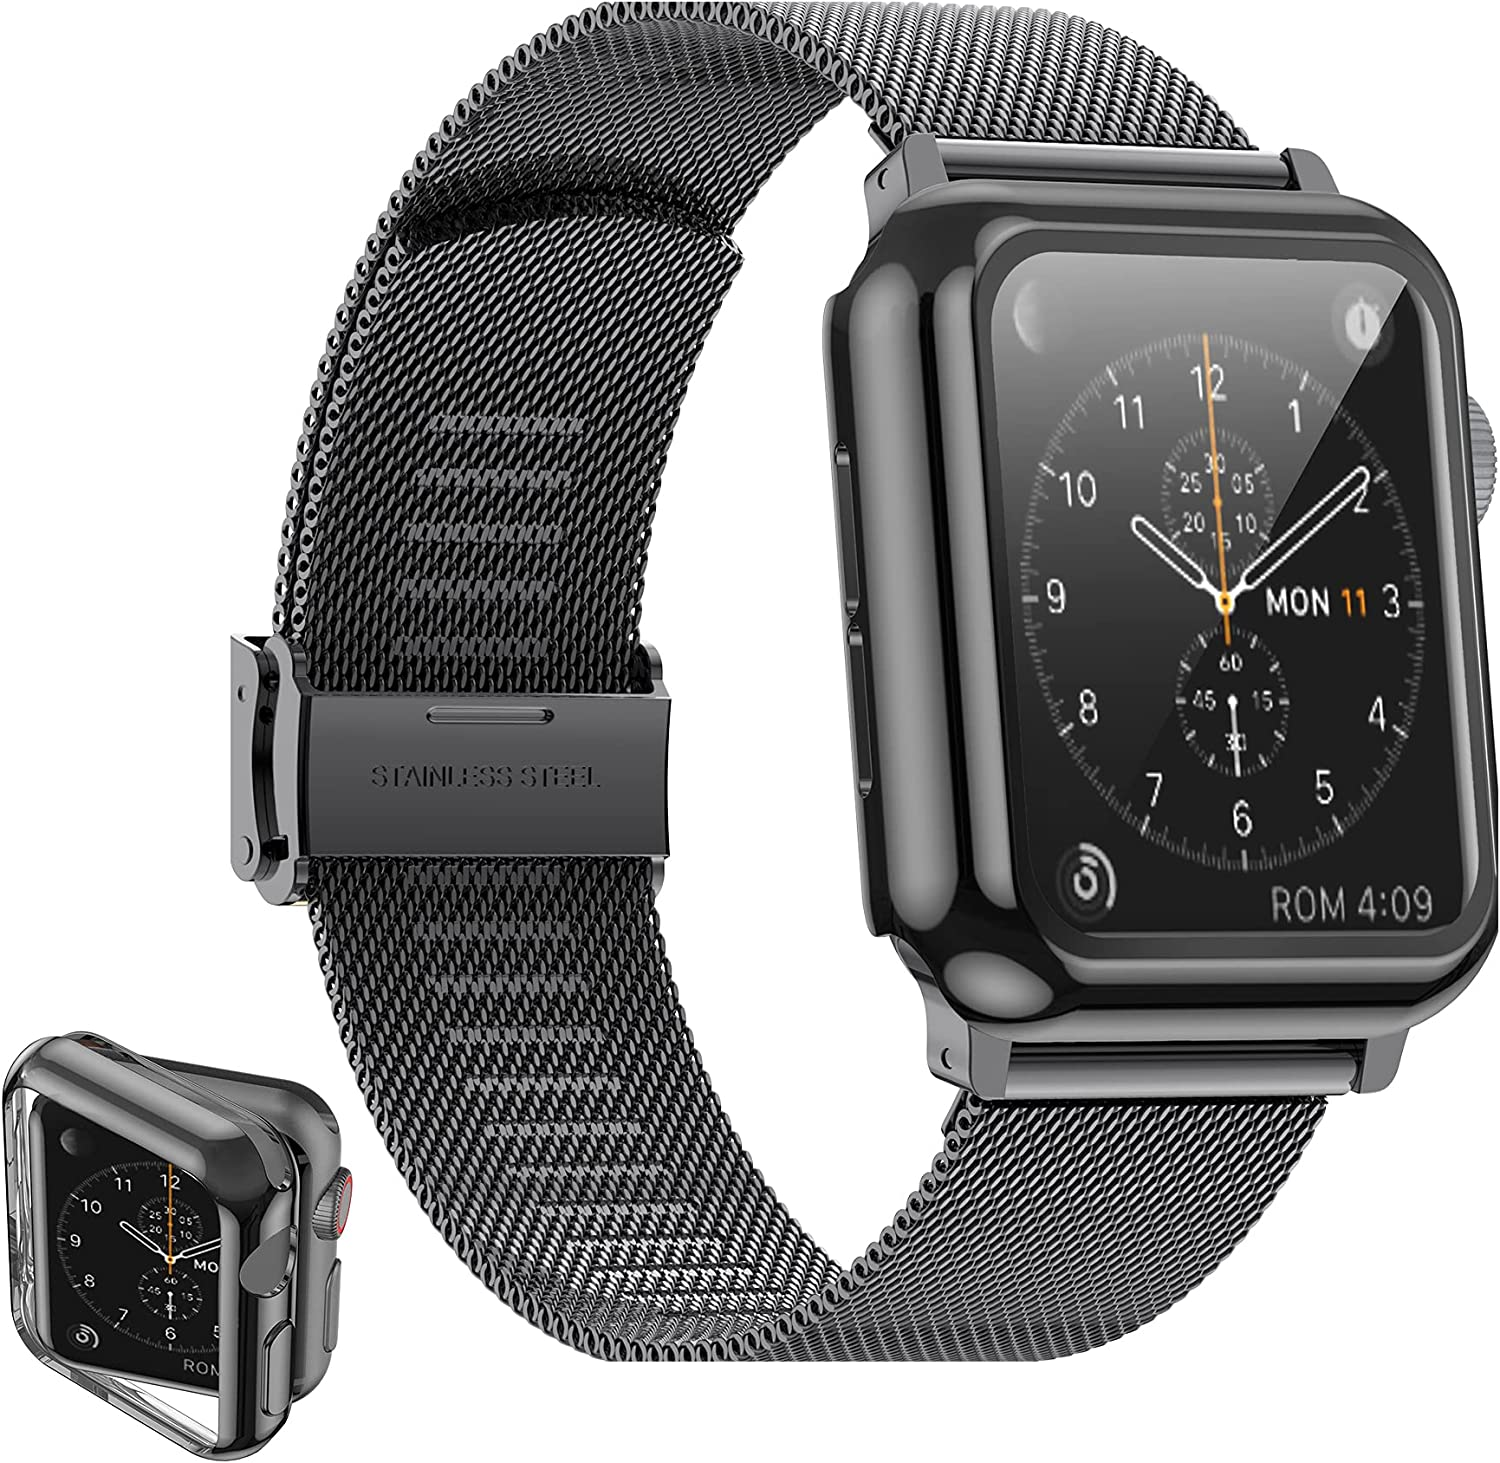 Girovo Compatible with Apple Watch Bands 38mm Women Men, Stainless Steel Mesh iWatch Bands with Screen Protector Case Cover Accessories for Apple Watch Band Series 3 Series 2 Series 1, Black